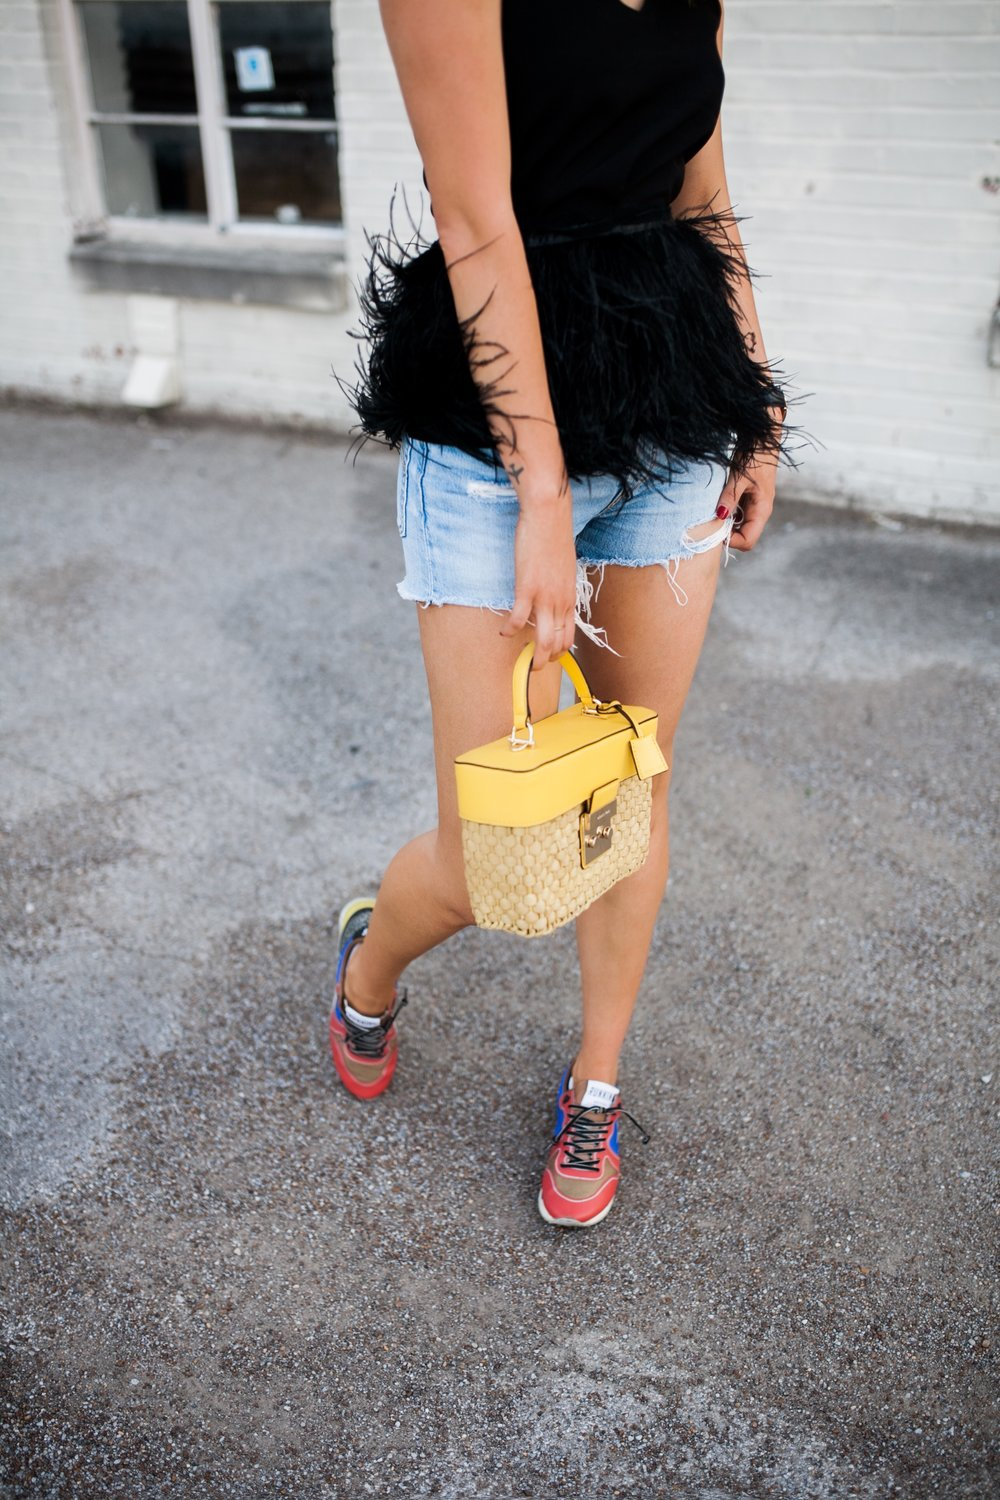 michael-kors-straw-yellow-bag-saks-off-fifth.JPG